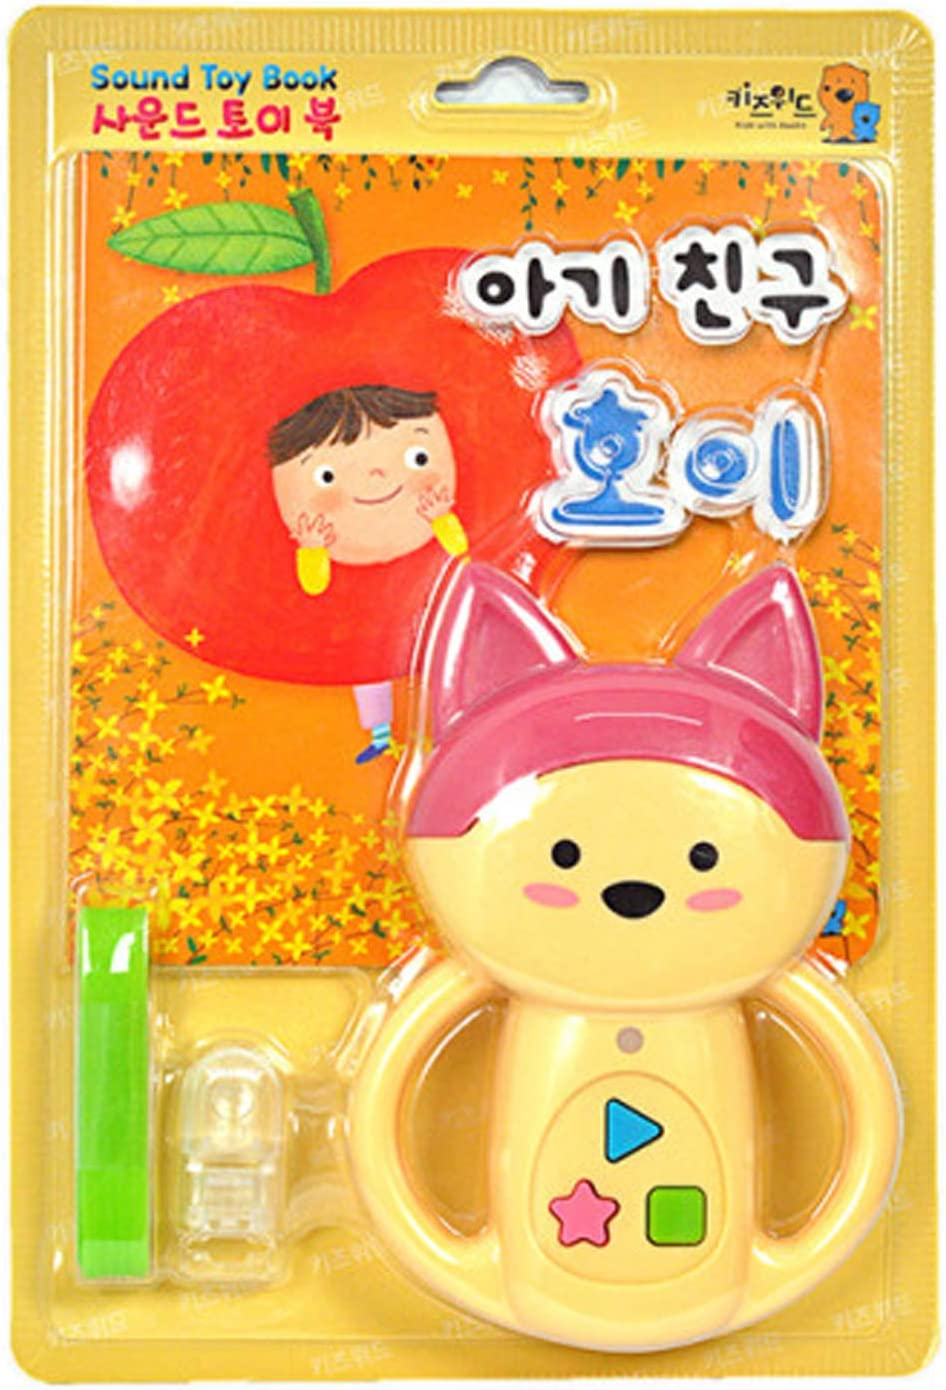 WITH Kids Baby Friend Hoi Toddlers Book Korean New mail order Sound 5% OFF for